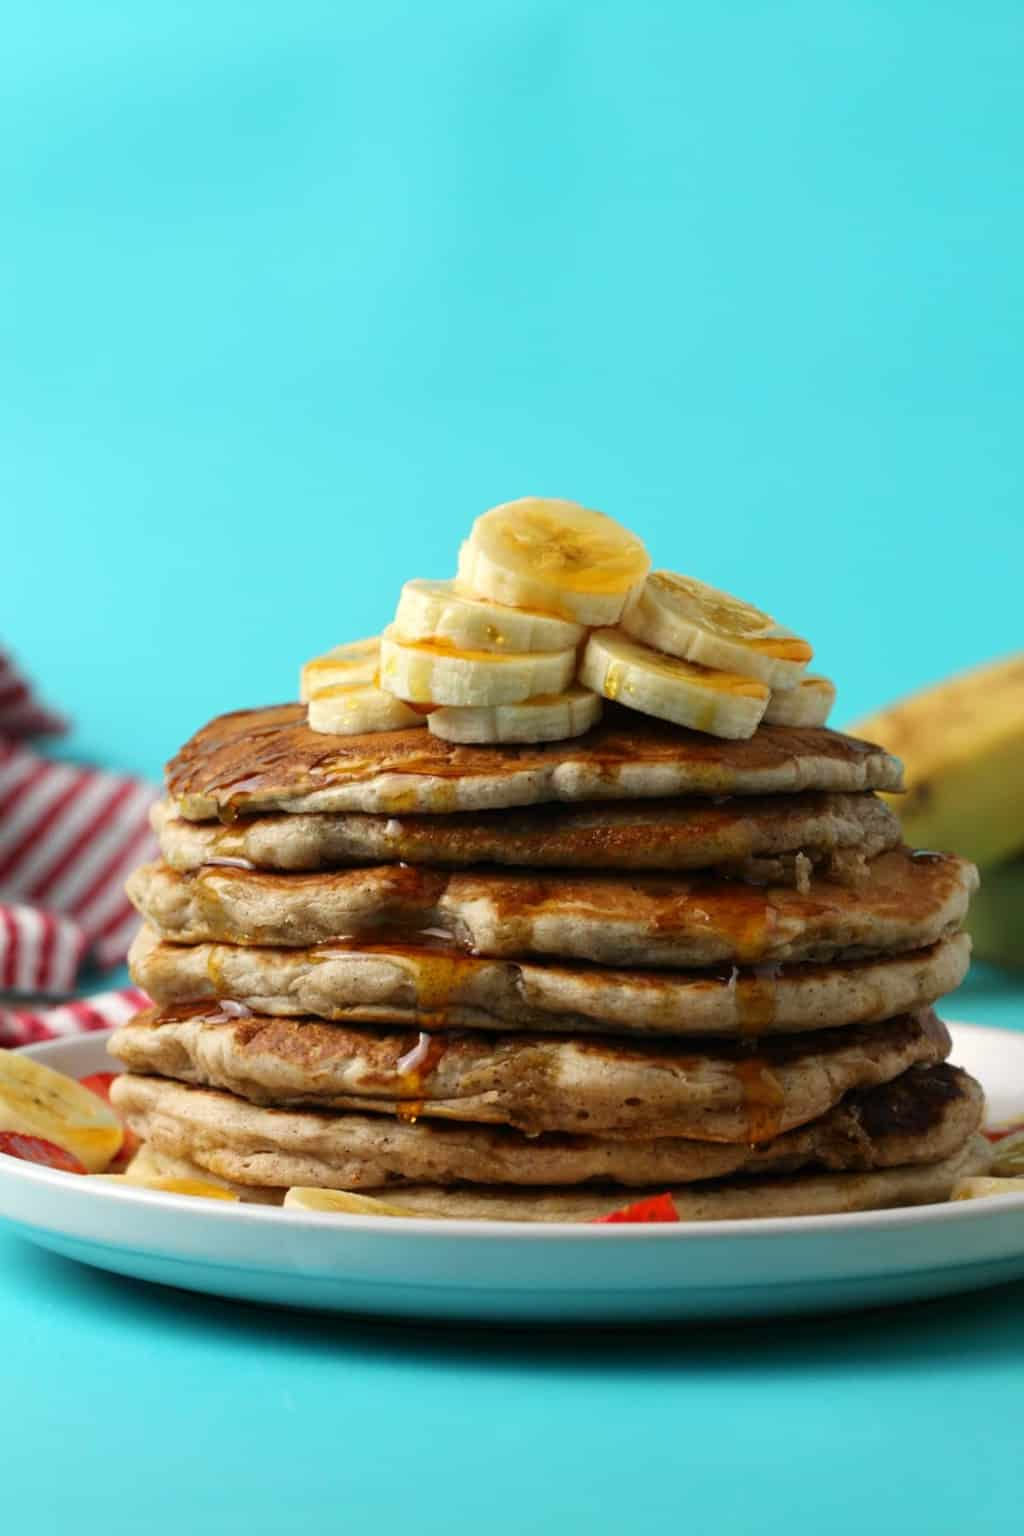 Vegan banana pancakes topped with sliced banana and drizzled with syrup on a white plate.